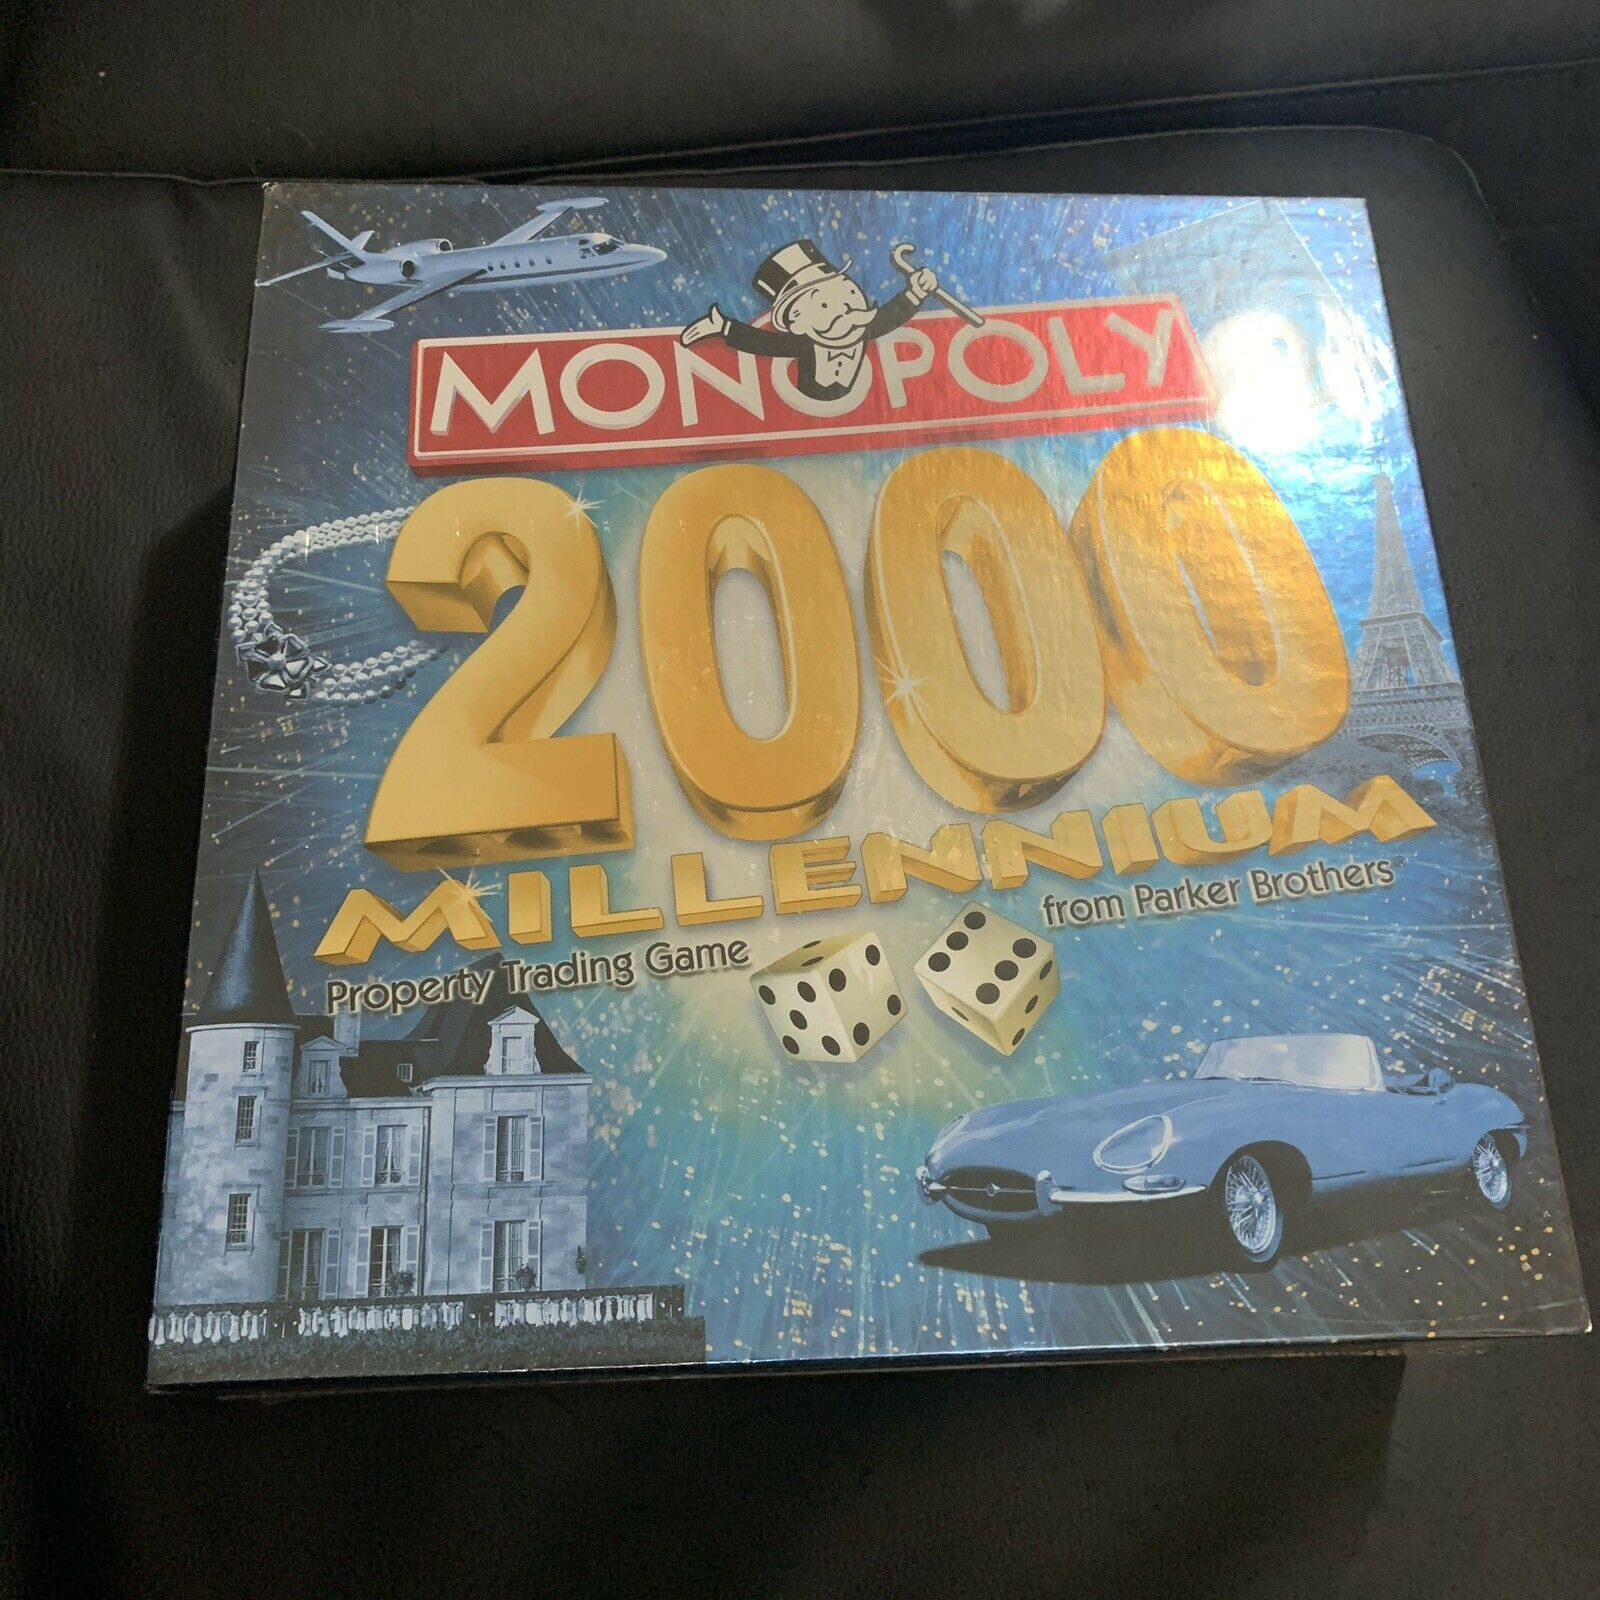 Monopoly 2000 Millennium Property Trading Game From Parker Bredhers Sealed NEW